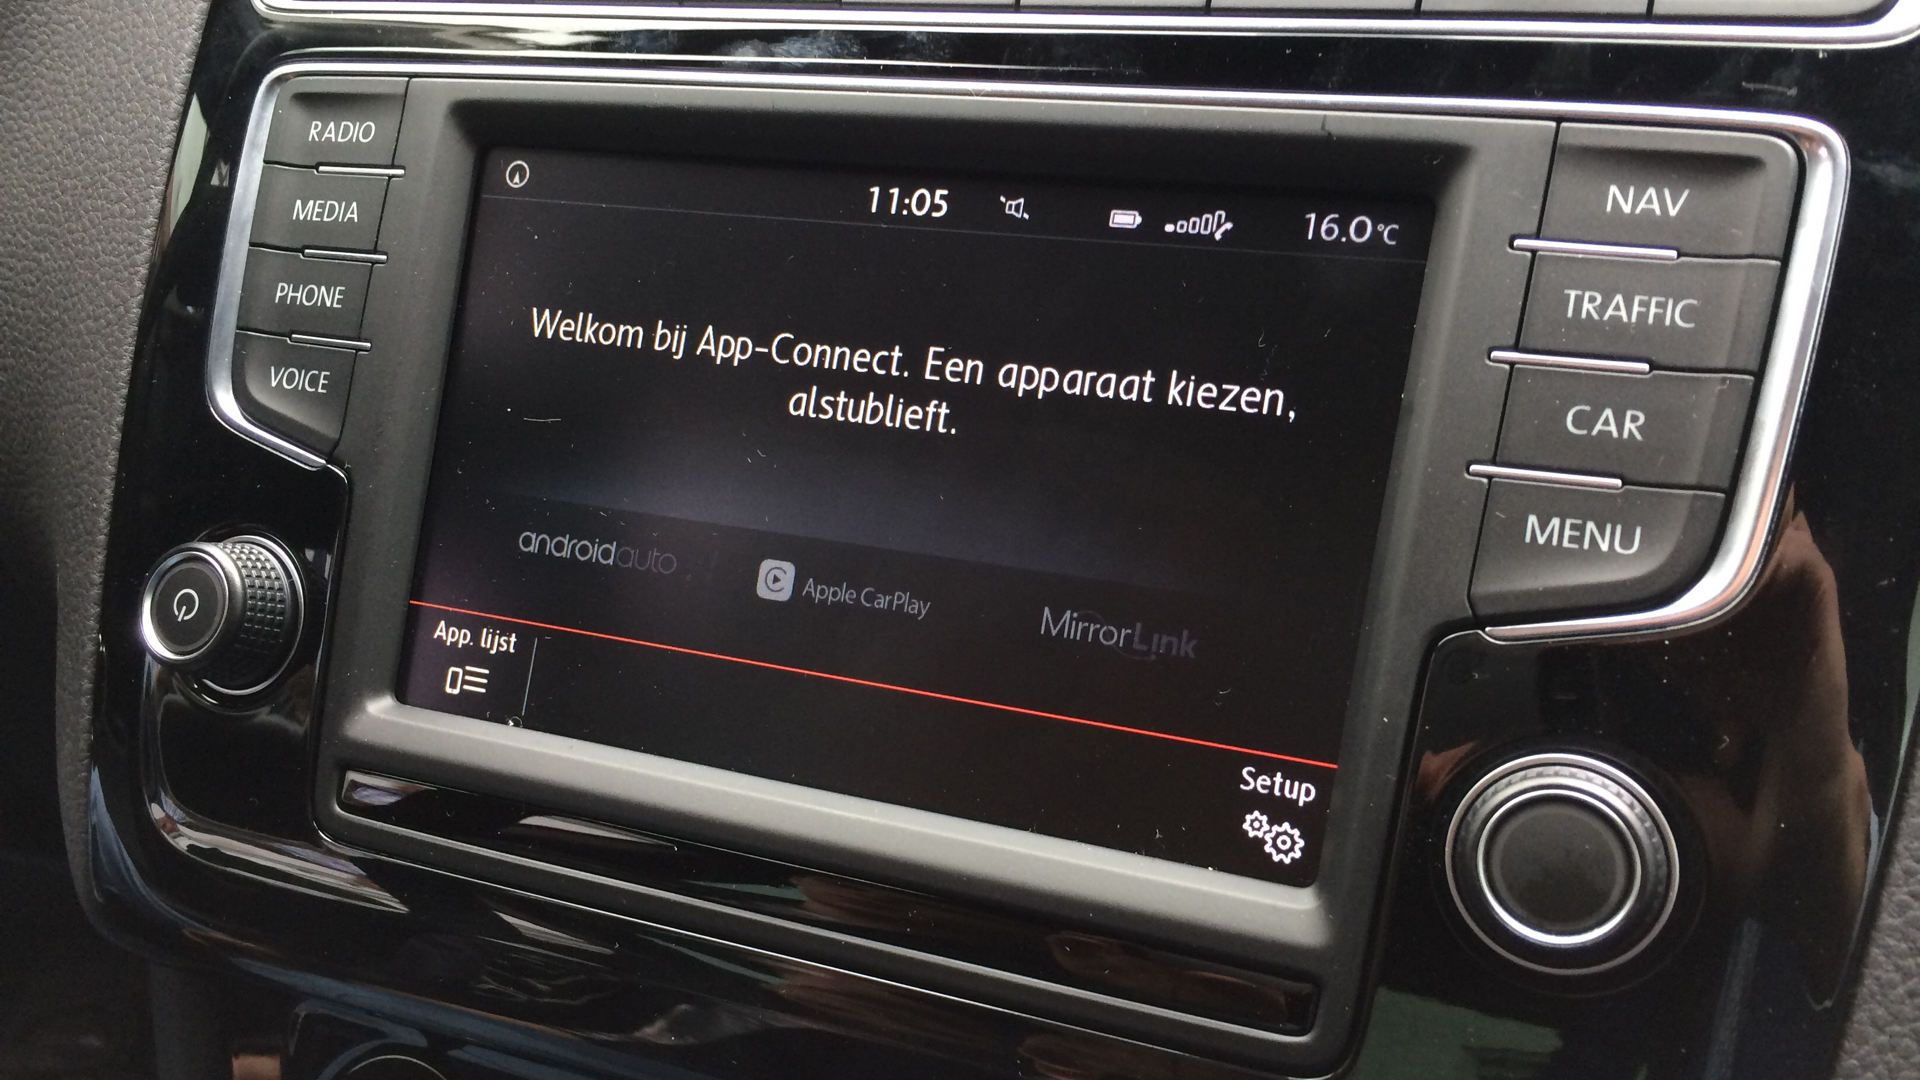 vw-carplay-2-16x9